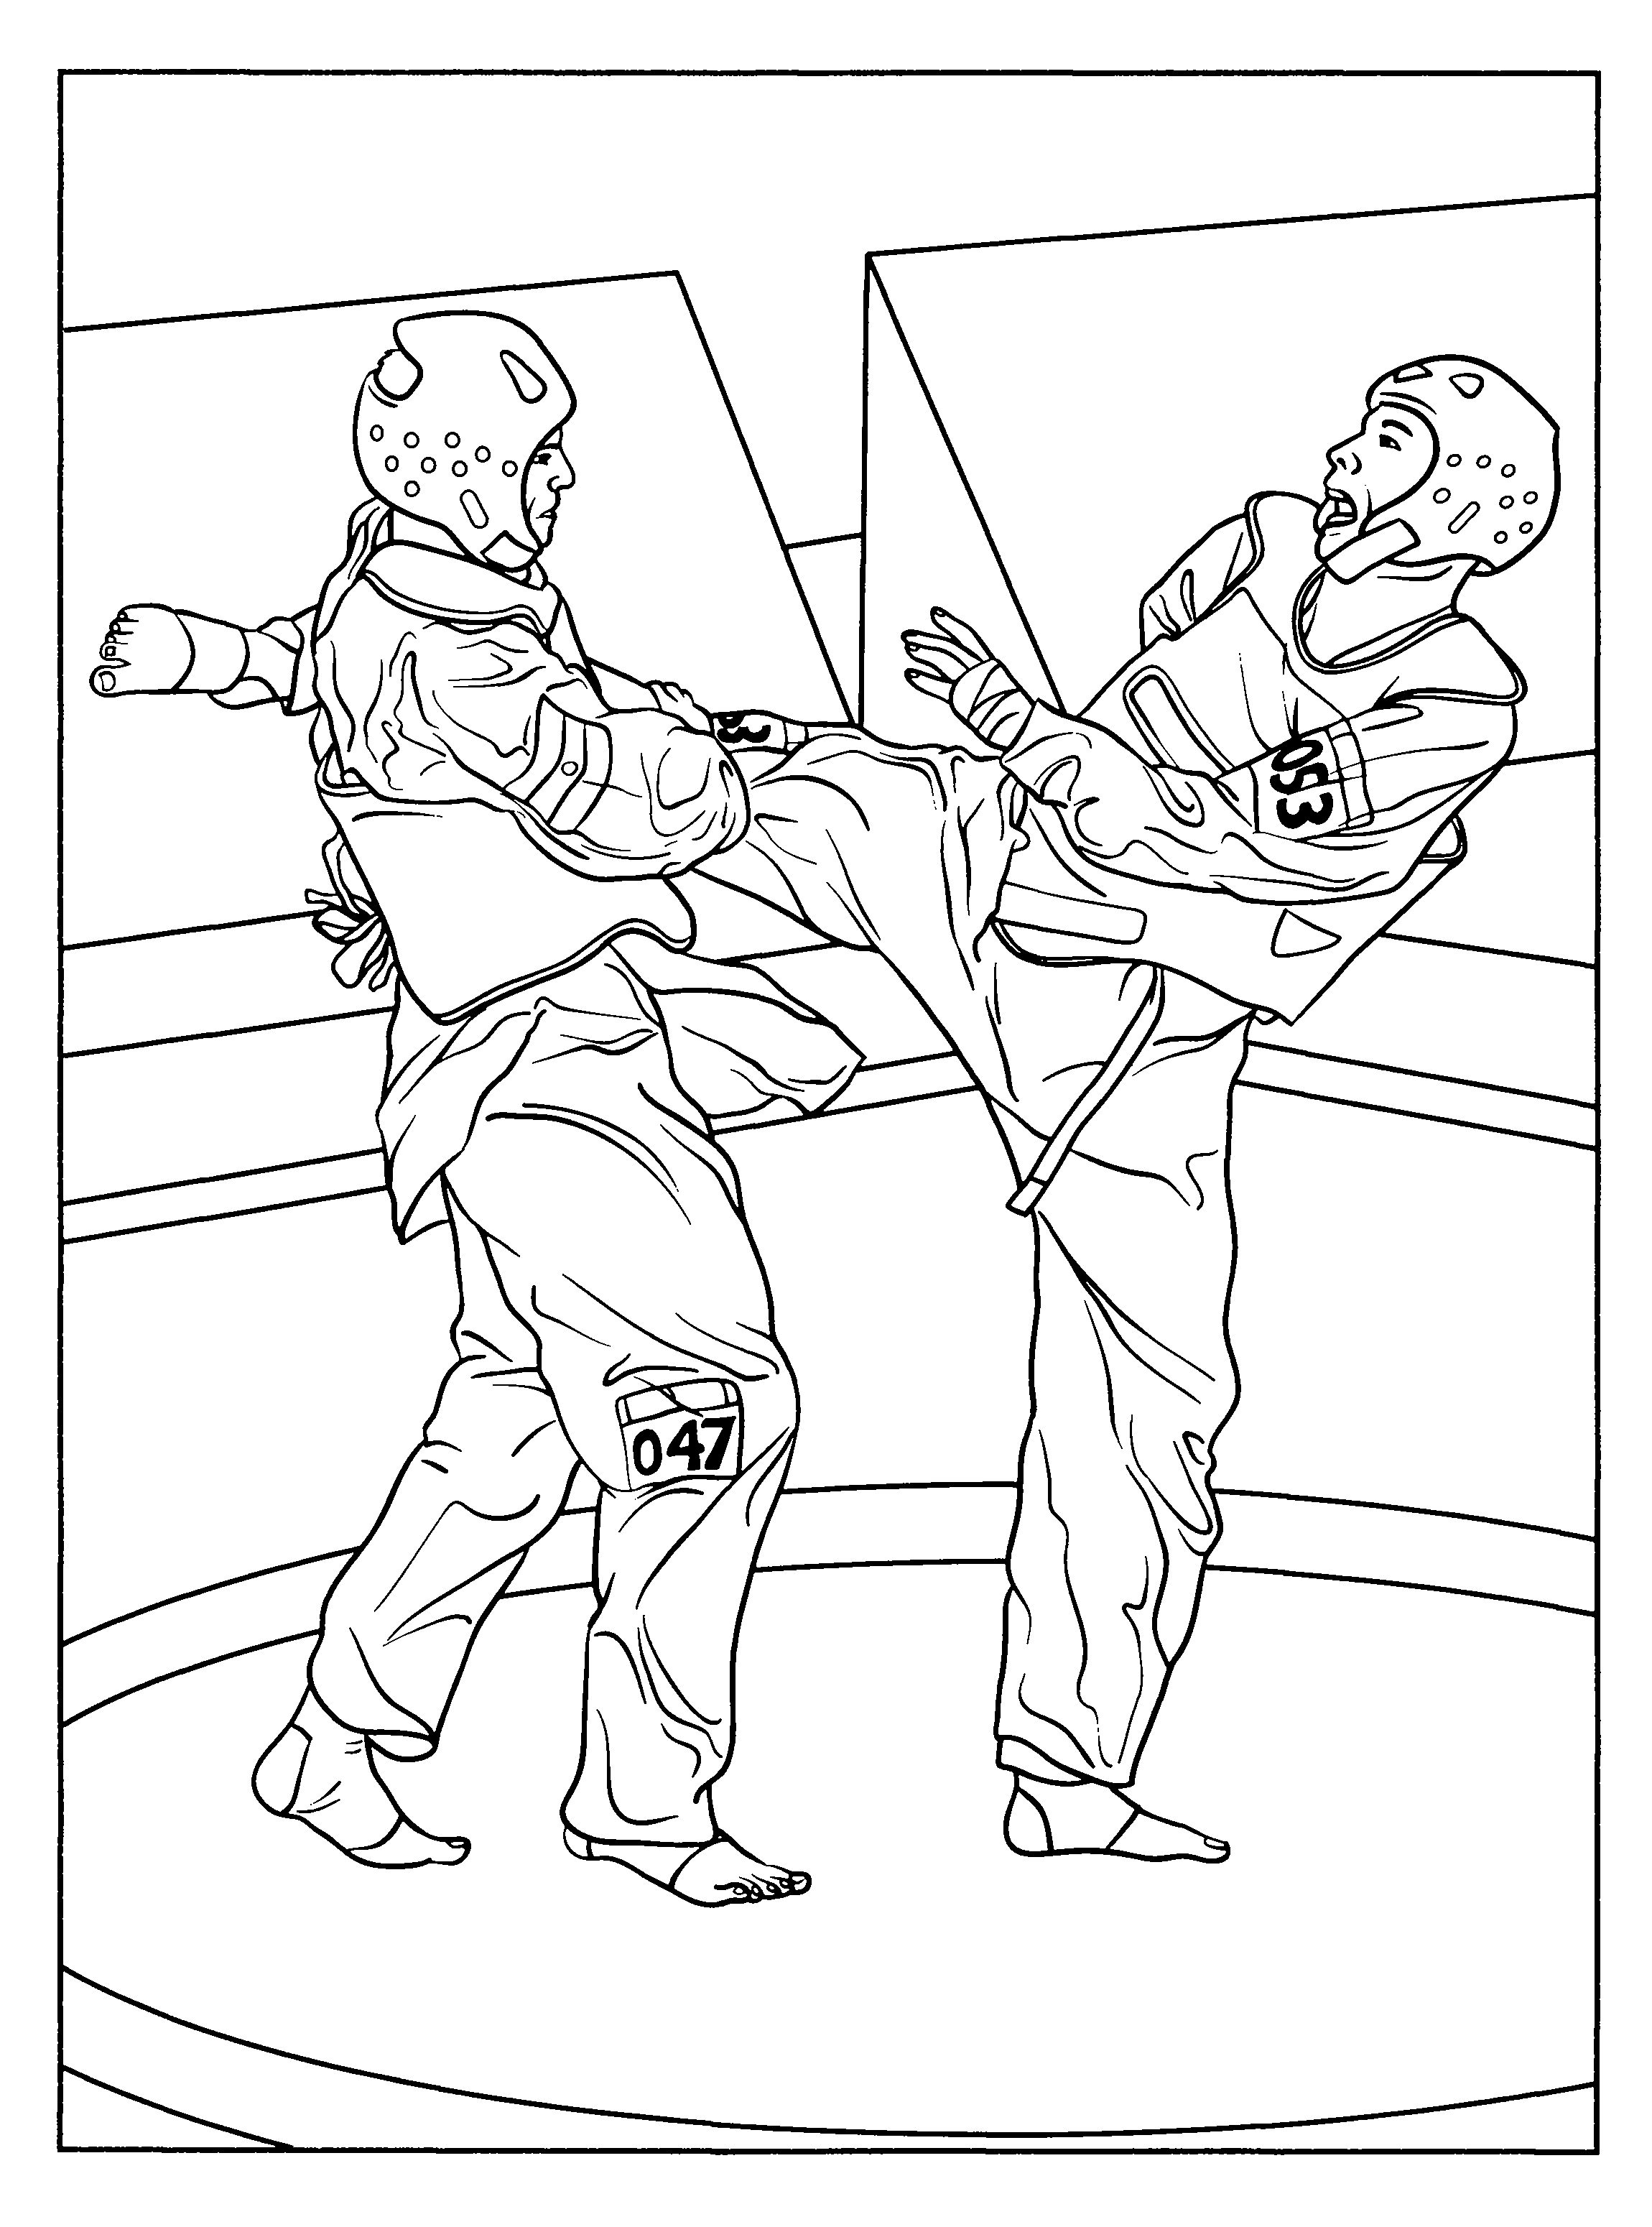 Karate Coloring Pages For Kids Coloring Book Pages Cartoon Coloring Pages Sports Coloring Pages